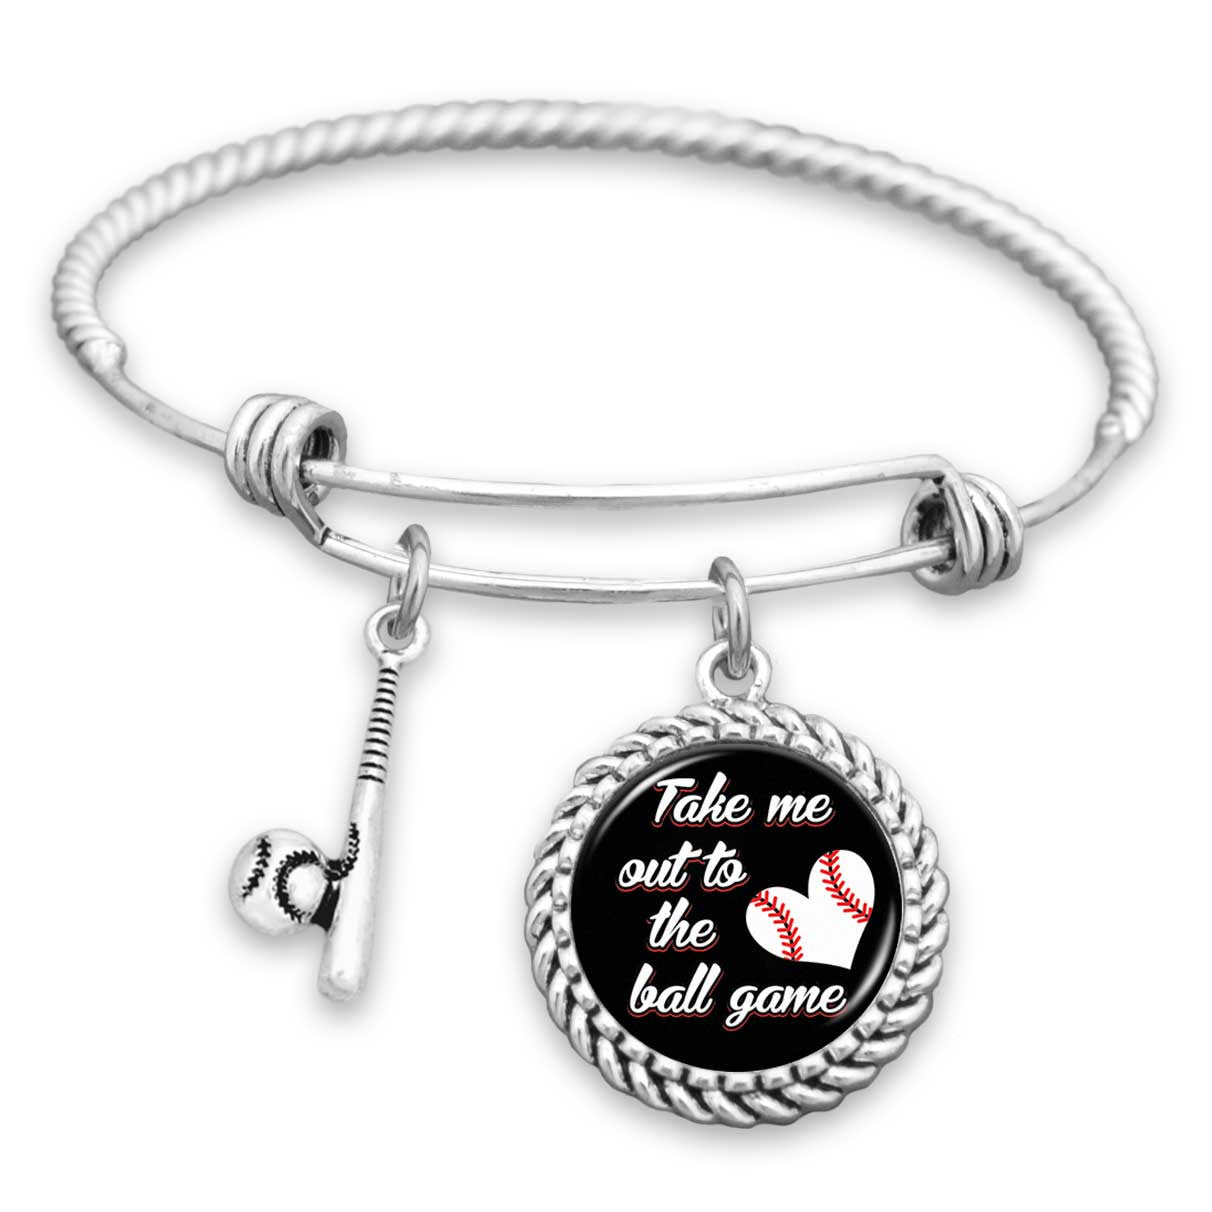 Baseball Charm Bracelet: Take Me Out To The Ball Game Baseball Charm Bracelet